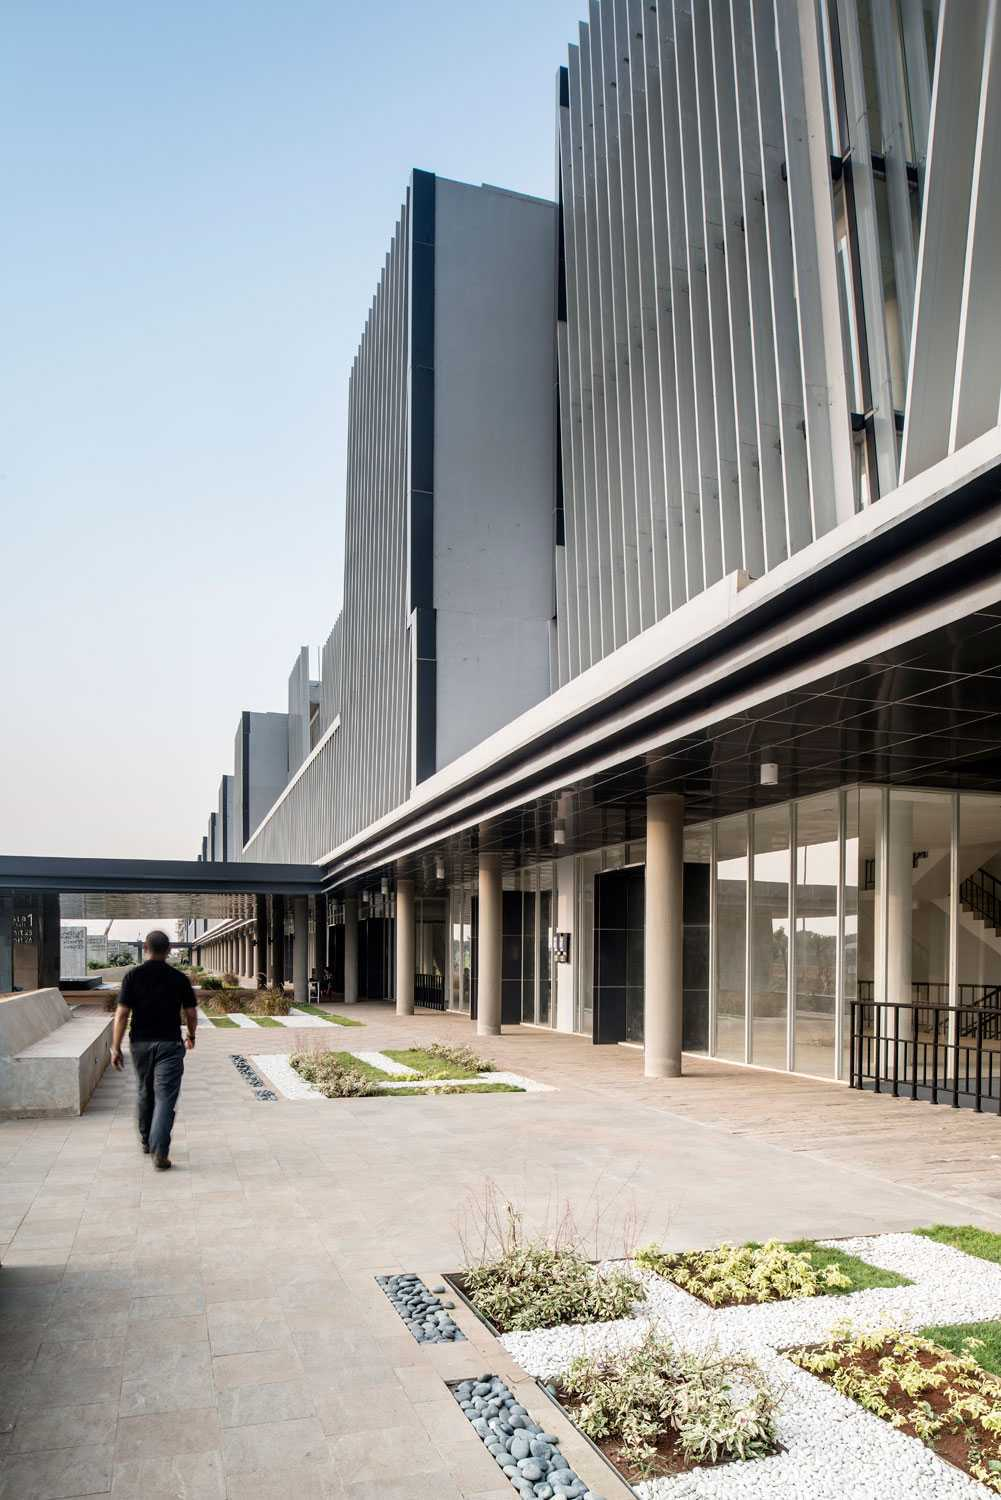 Aboday Architect Foresta Business Park Tangerang, Indonesia Tangerang, Indonesia Perspective-View Kontemporer 15886